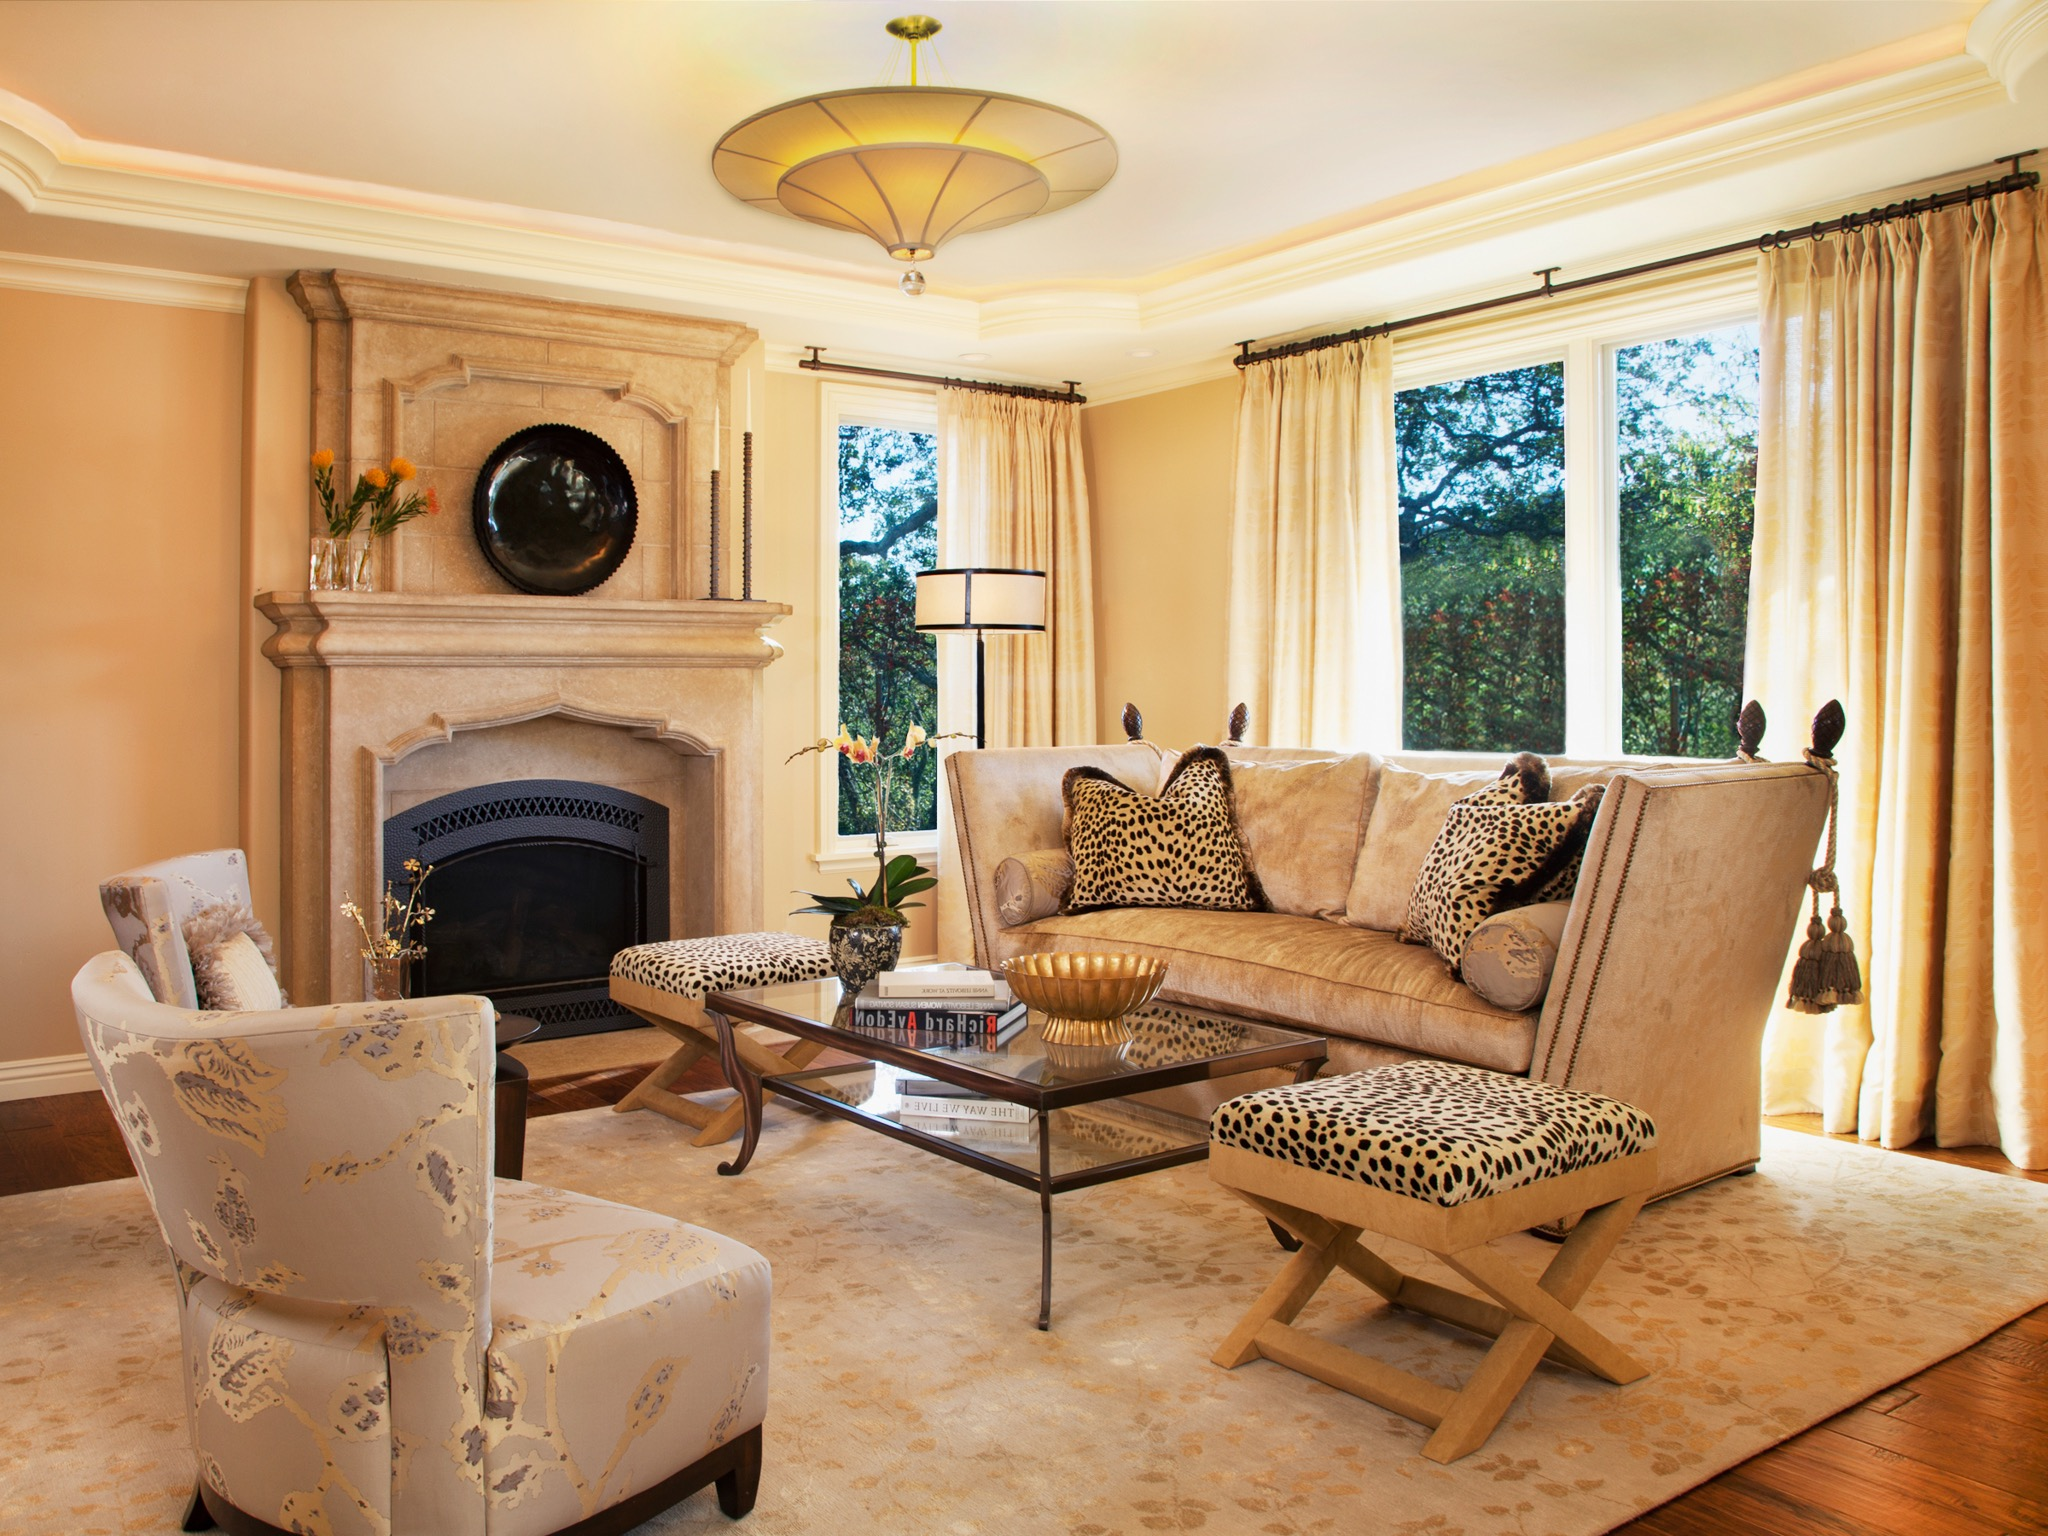 Mediterranean Formal Living Room With Fireplace (Image 5 of 25)